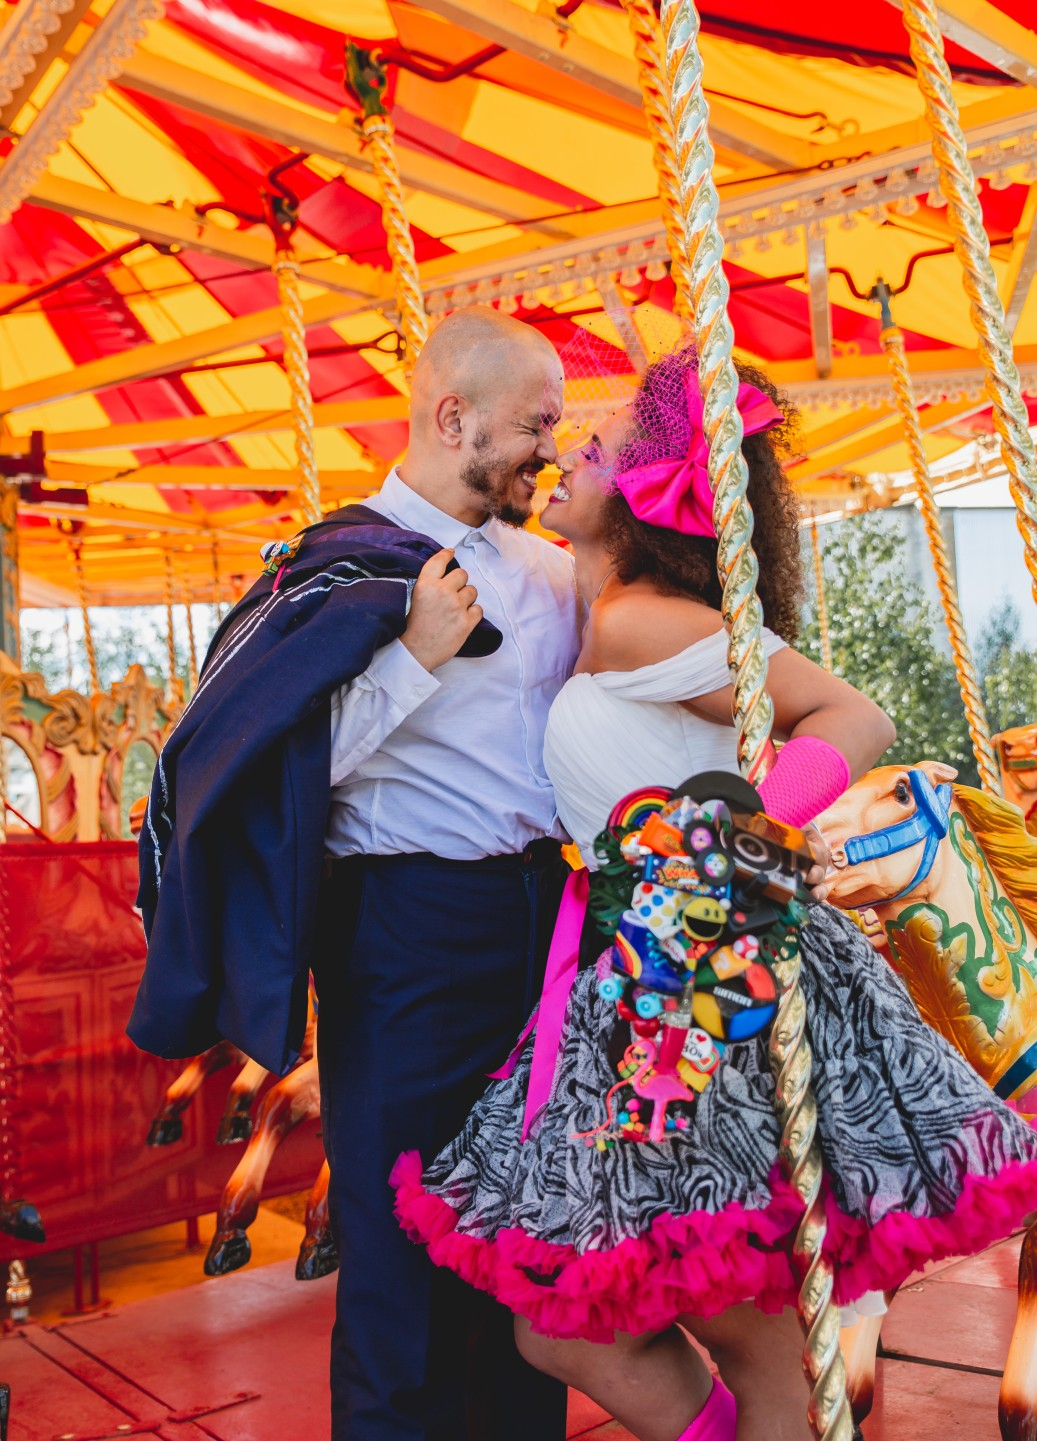 fairground wedding - fun wedding photos - carousel wedding photos - funfair wedding - 80s wedding